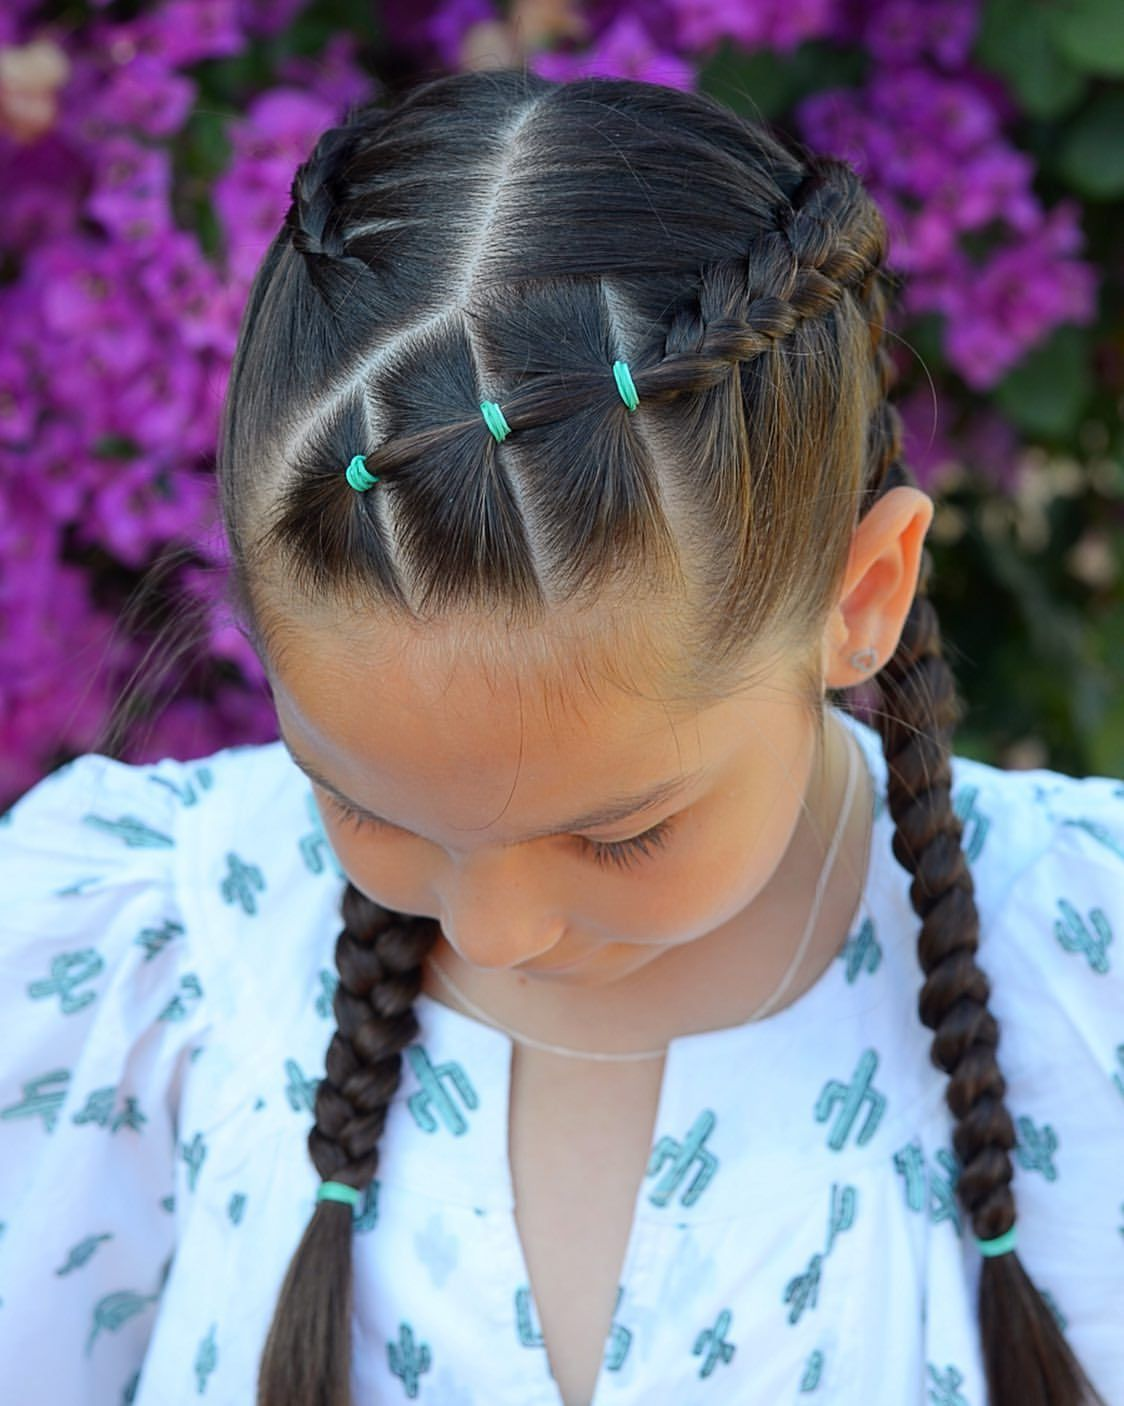 Dutch Braids With Elastics For A Birthday Party Have A Great Day Braids Braidstyles Brai Kids Hairstyles Hair Styles Toddler Hairstyles Girl